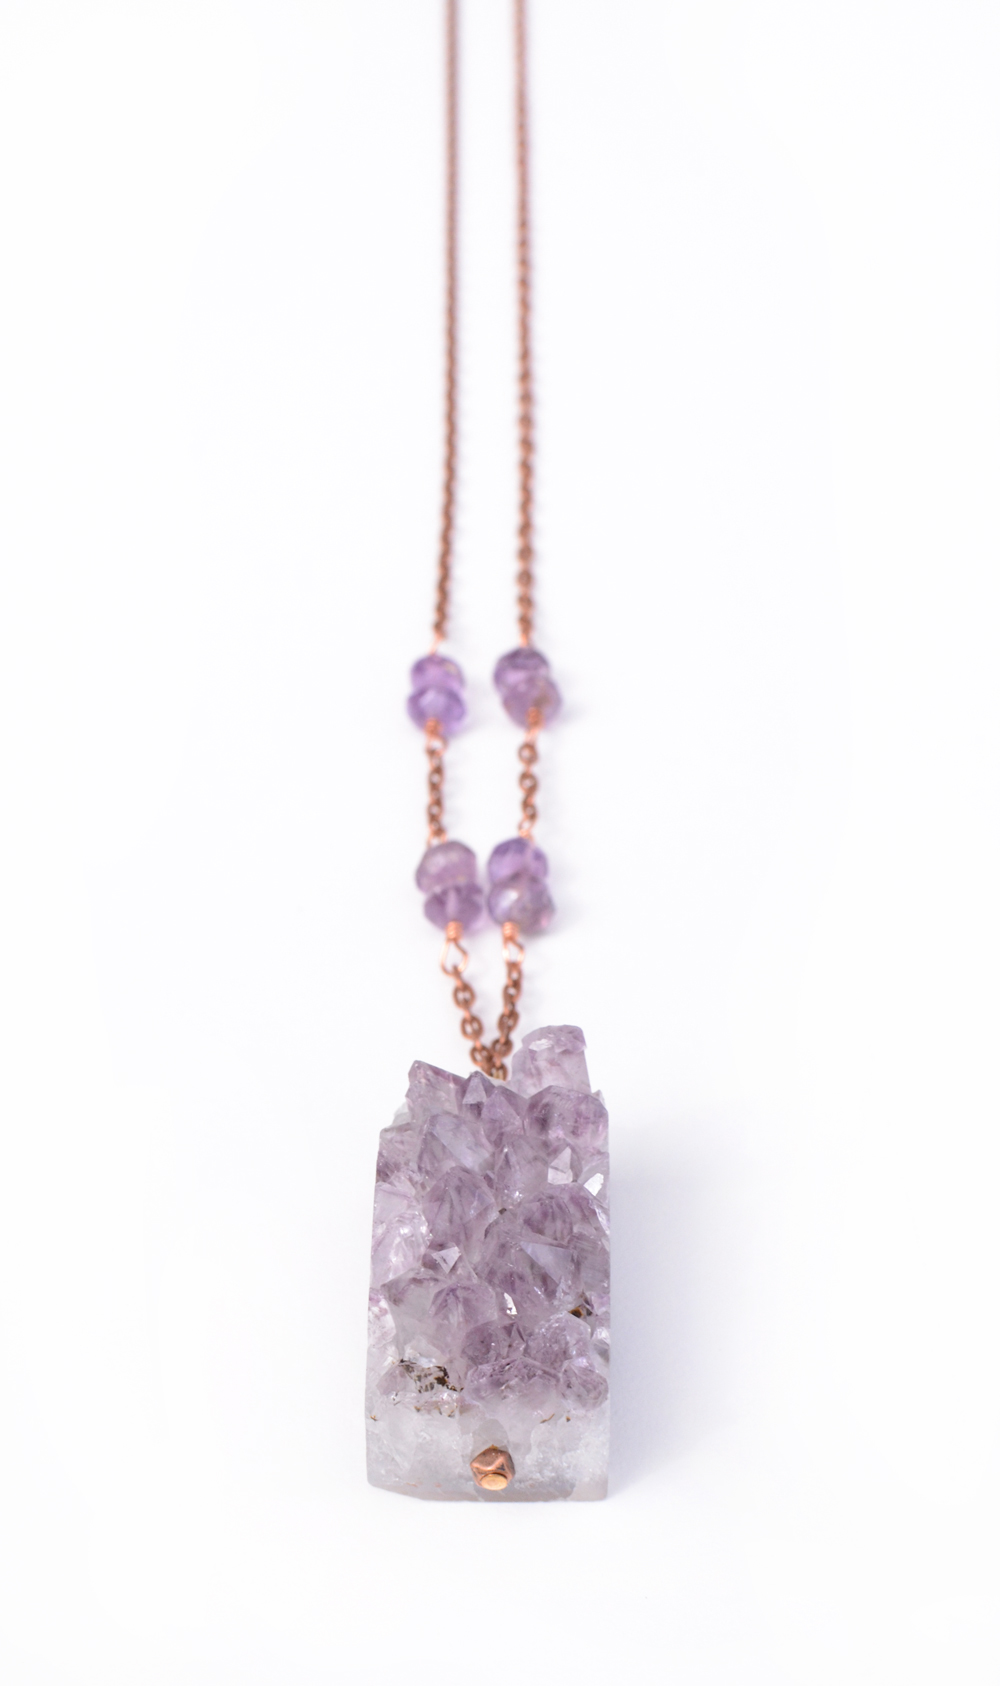 Raw-Amethyst-Rectangle-Pendant-Necklace-4.jpg